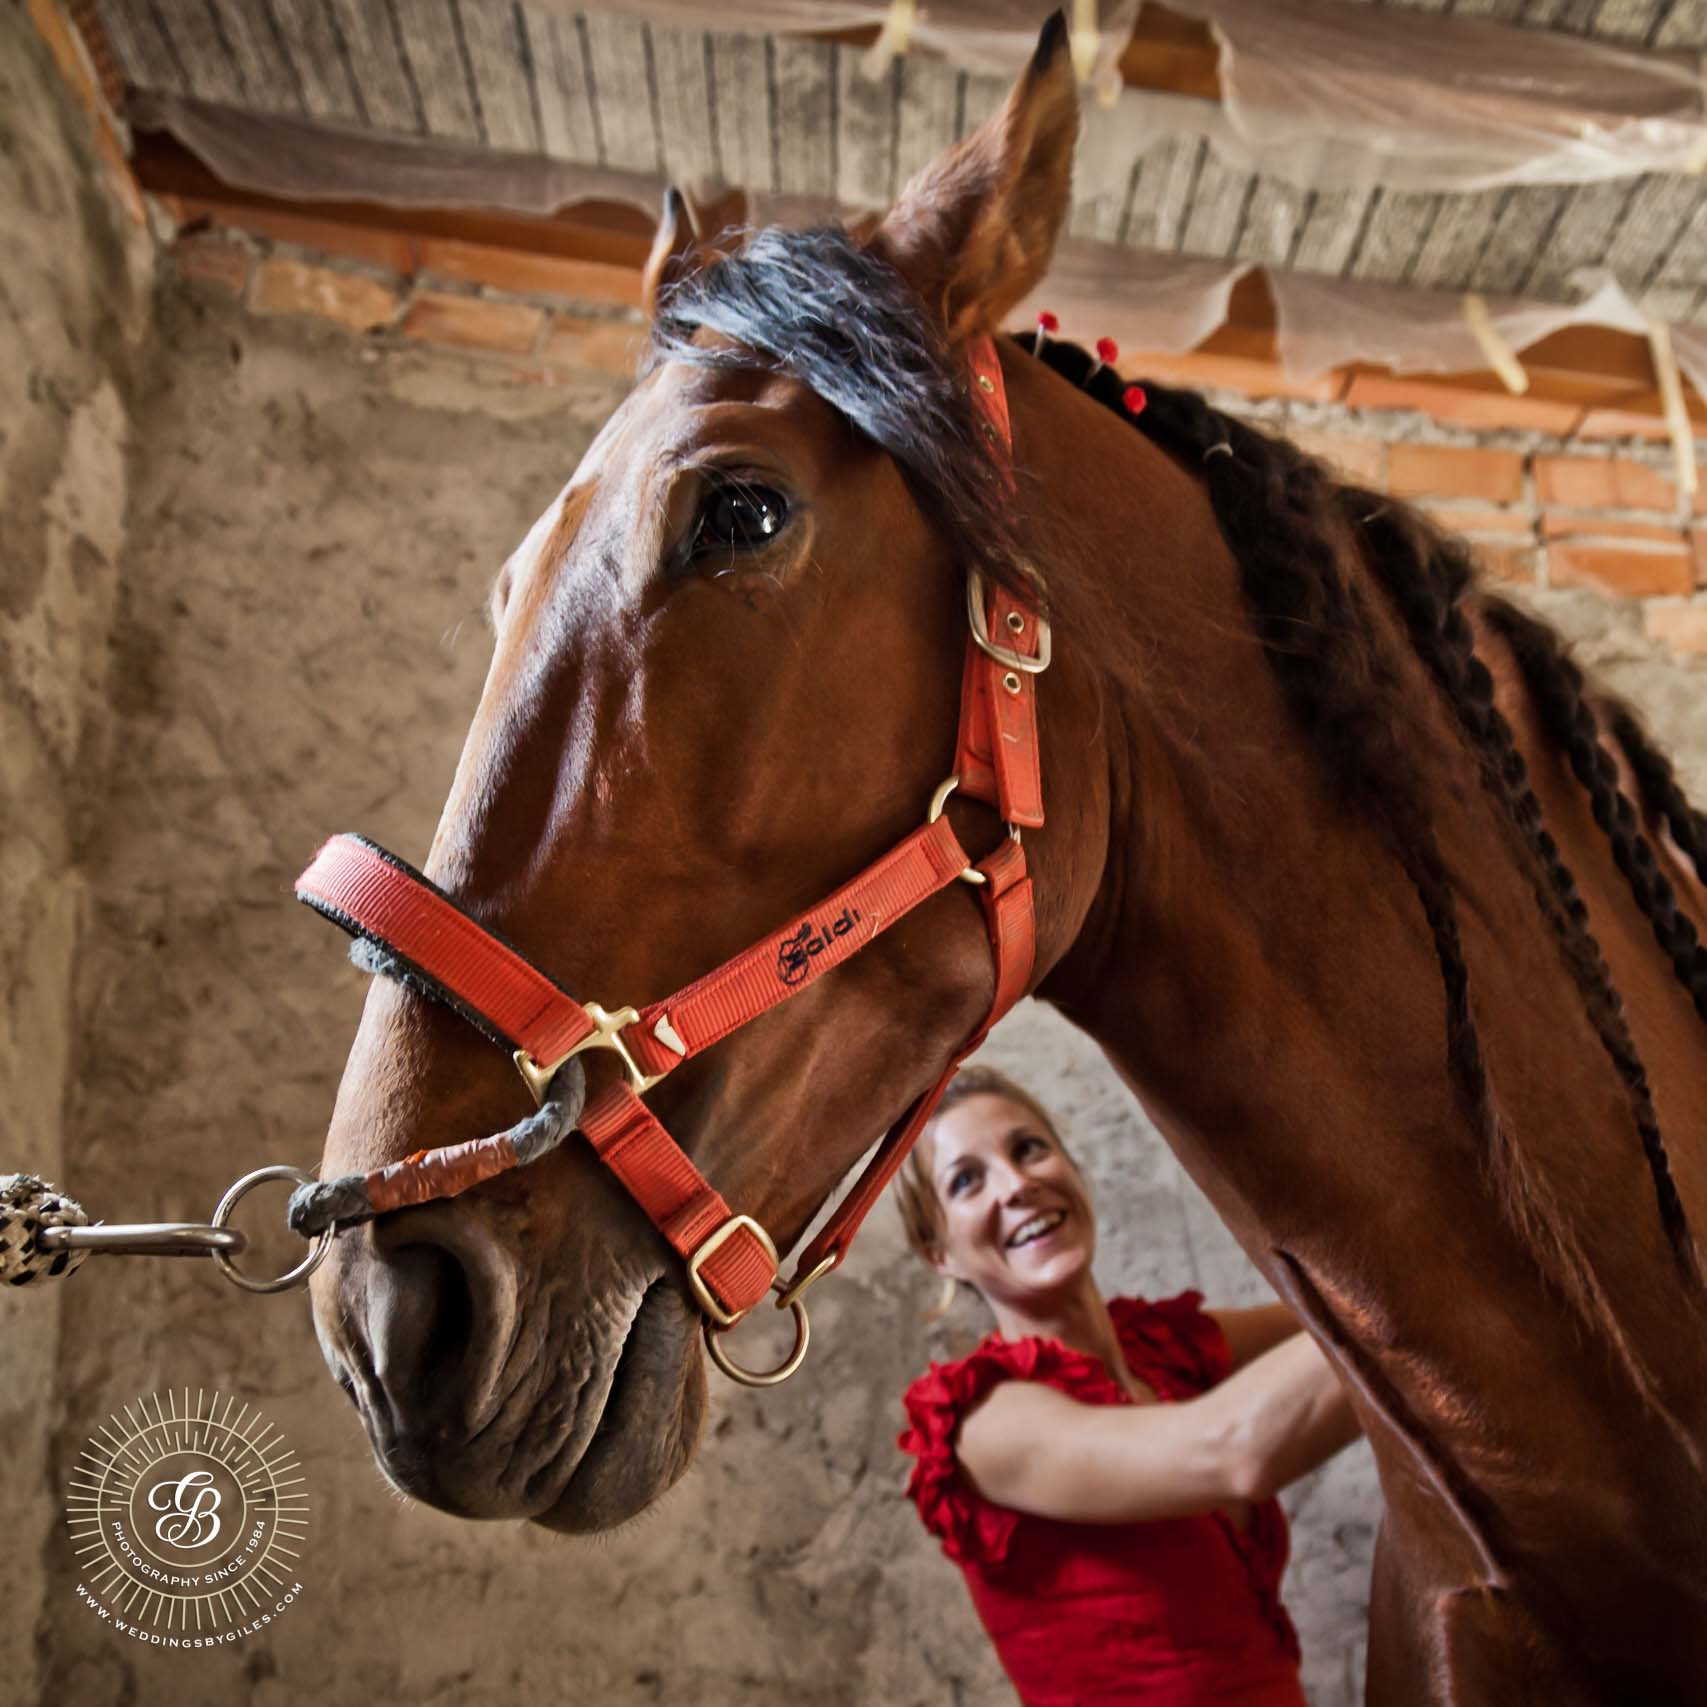 Wedding preparations in the stables